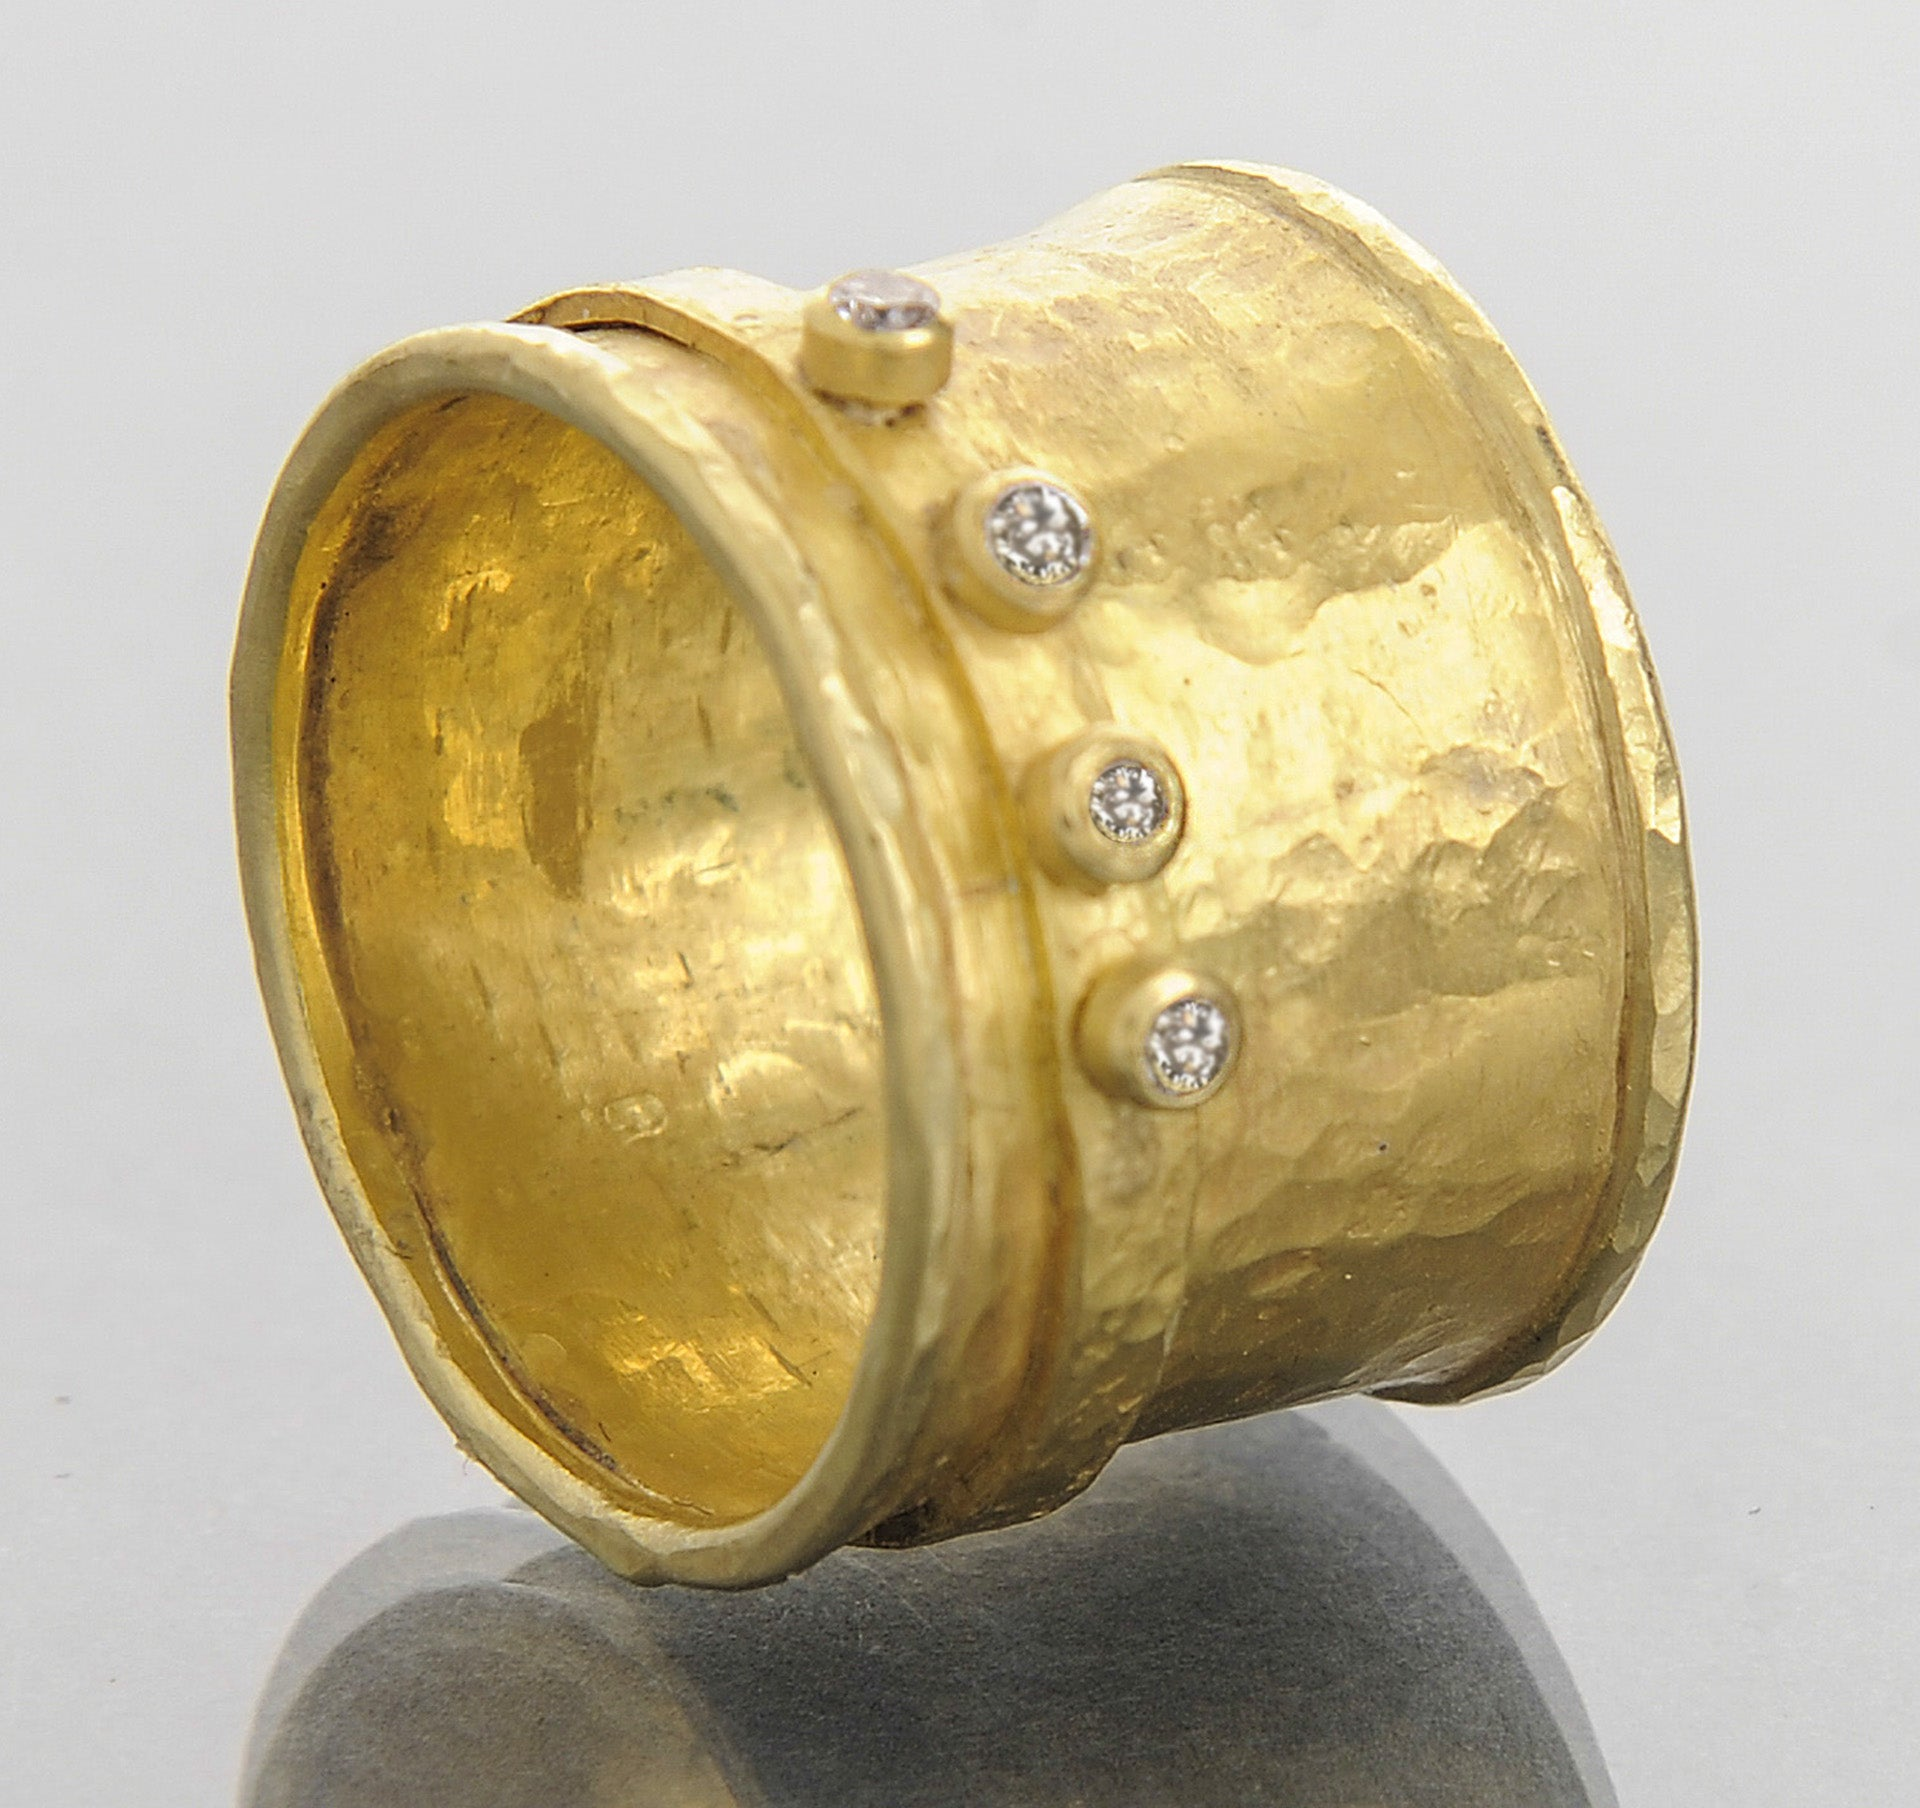 18k cigar band with diamond halo